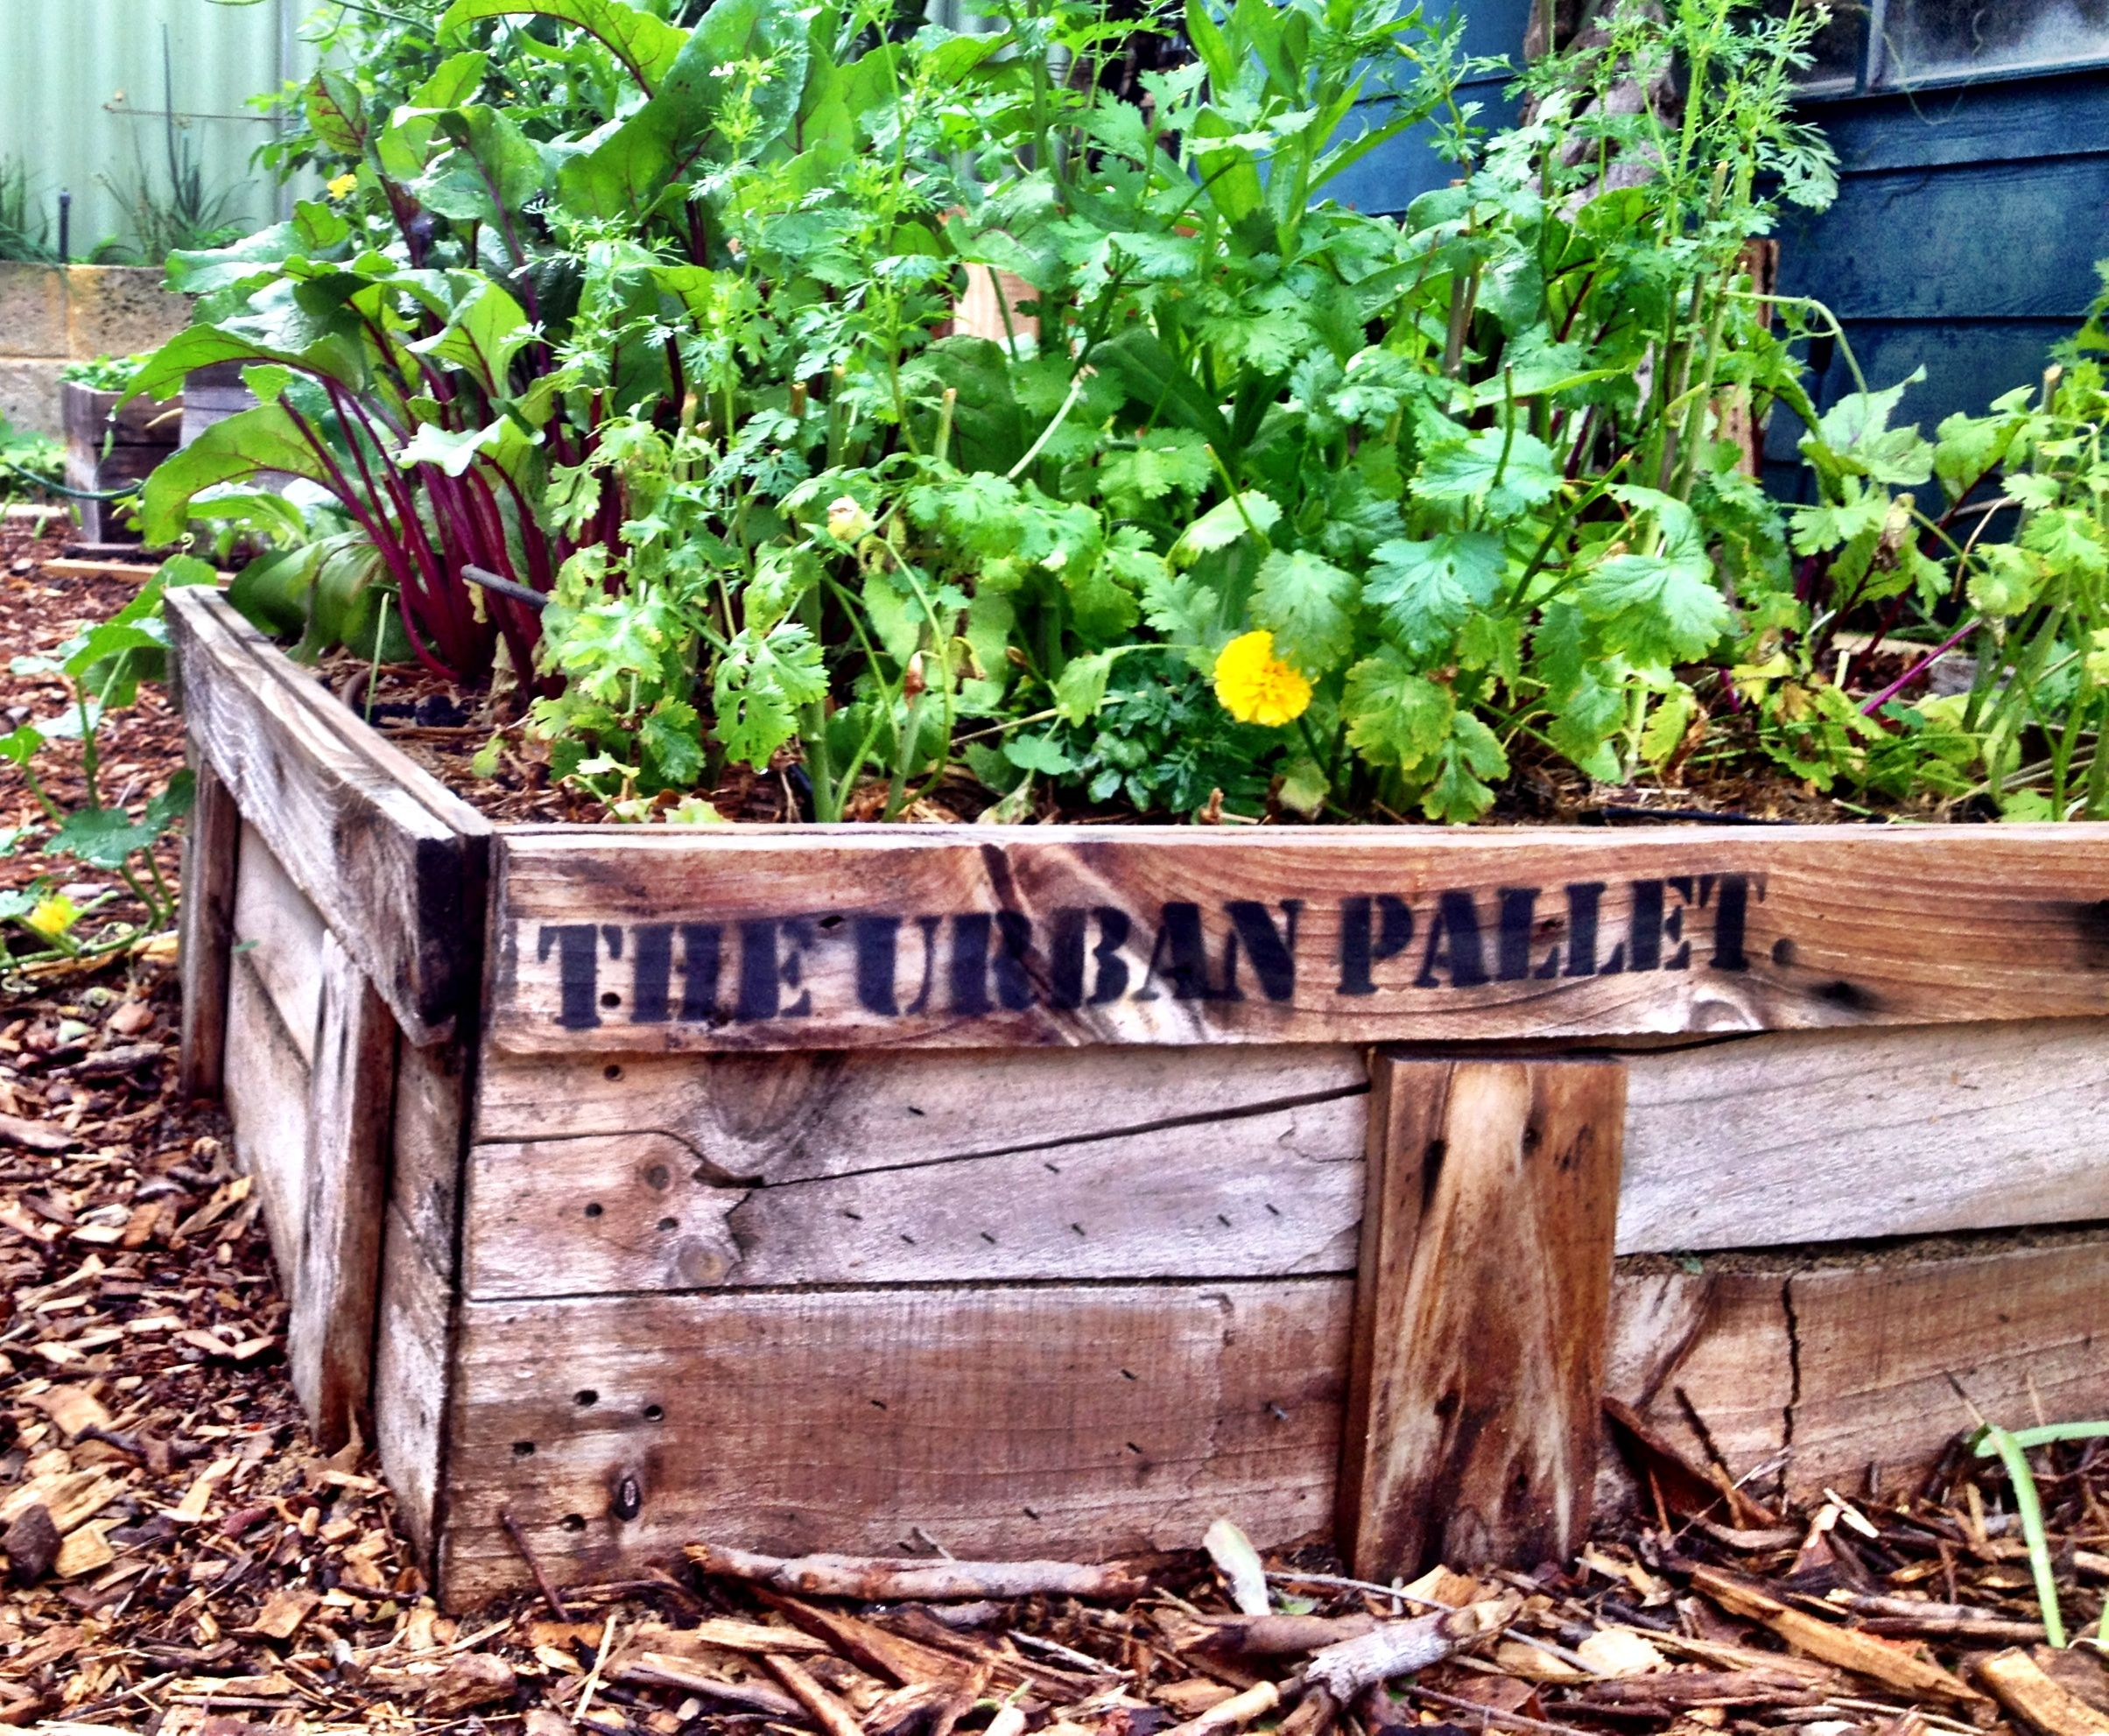 Rustic Wooden Planter Boxes From 50 Perth Wa Contact Theurbanpallet Gmail Com Wooden Planter Boxes Wooden Planters Planter Boxes